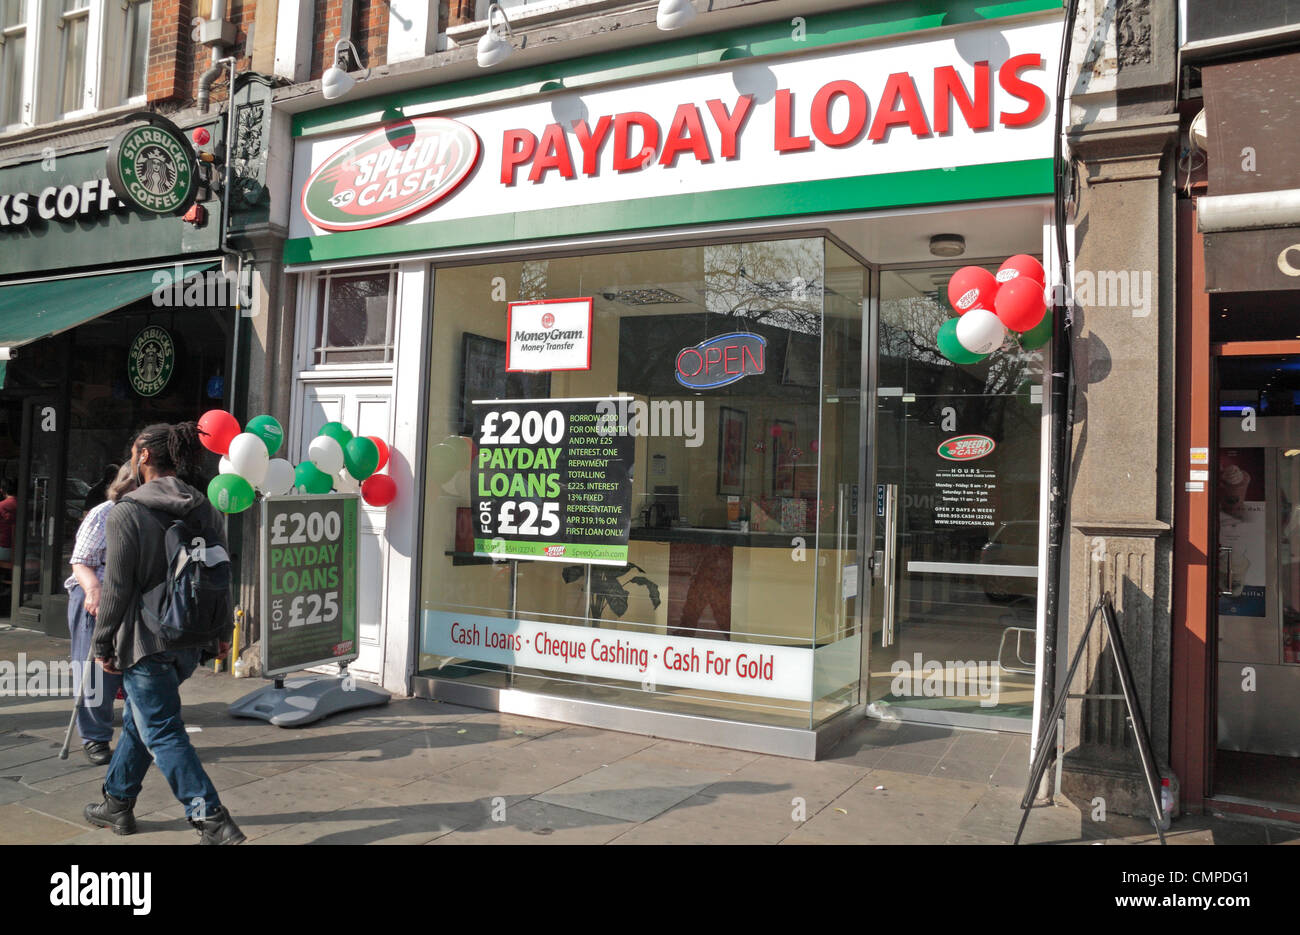 The Speedy Cash Payday Loans shop on 60 Uxbridge Road, Shepherd's Bush, London, W12, UK. - Stock Image